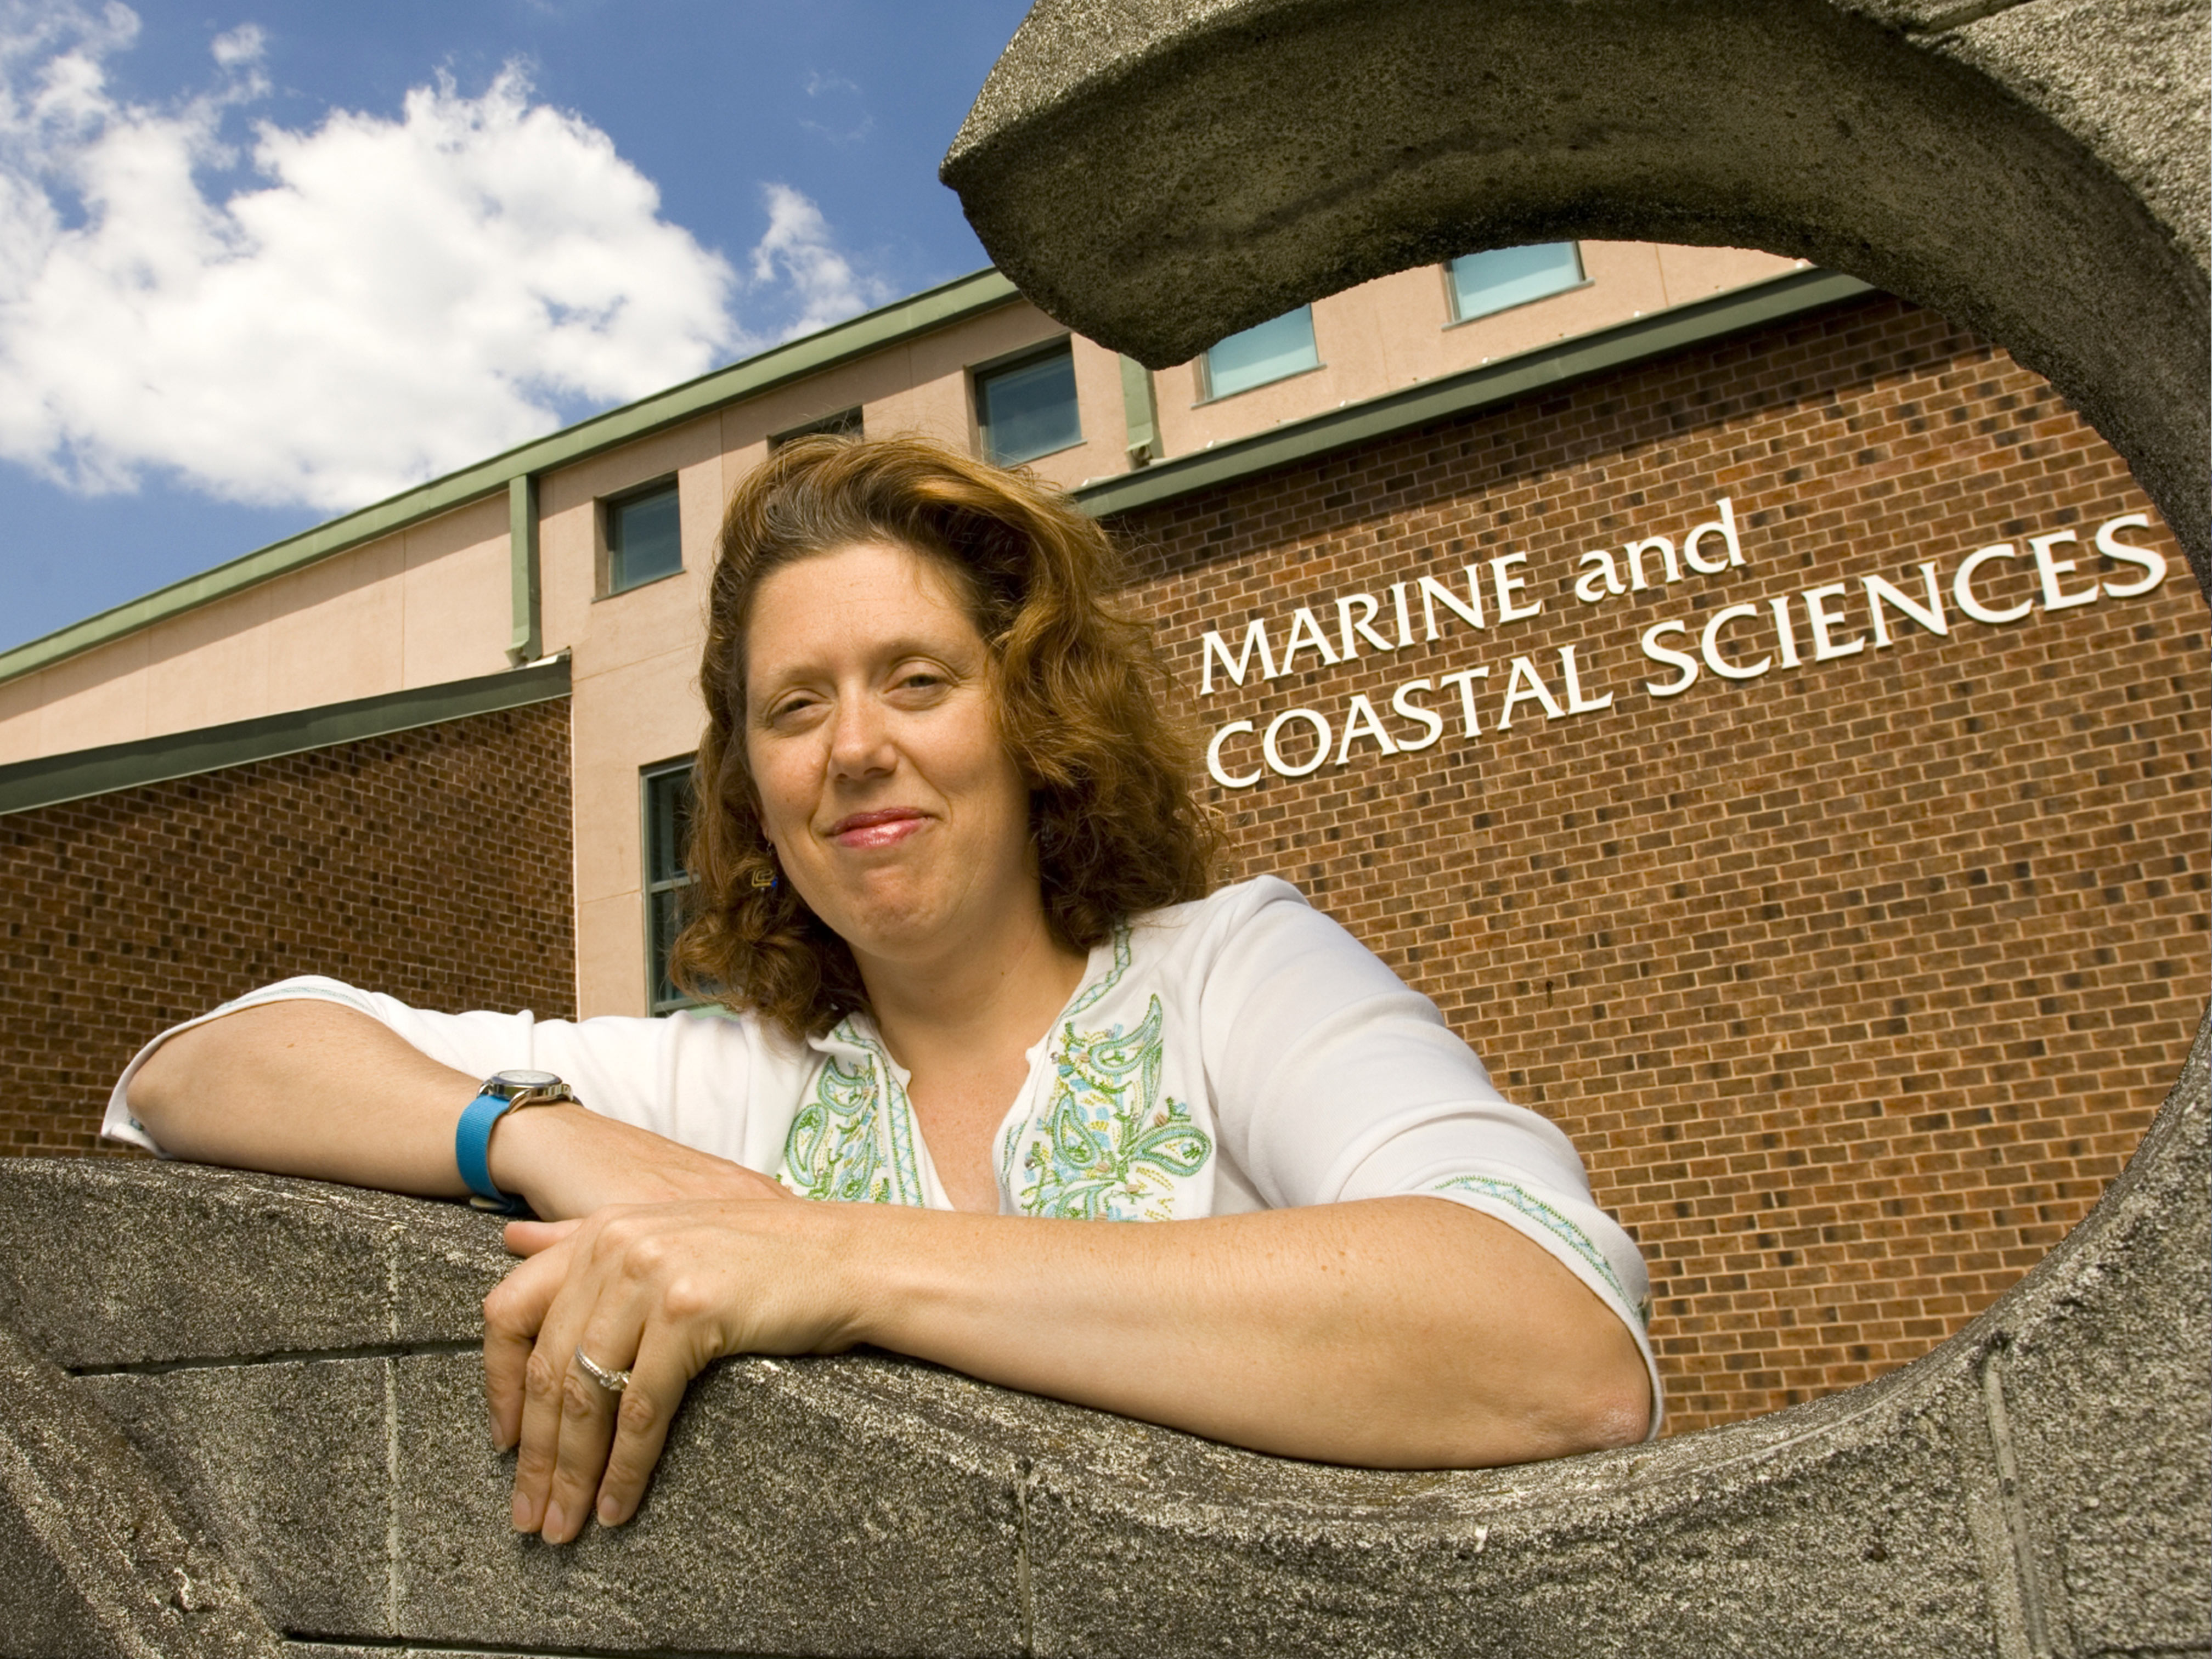 Janice McDonnell, Center for Advancing the Societal Impacts of Research coprincipal investigator and an associate professor in the School of Environmental and Biological Sciences at Rutgers University-New Brunswick.